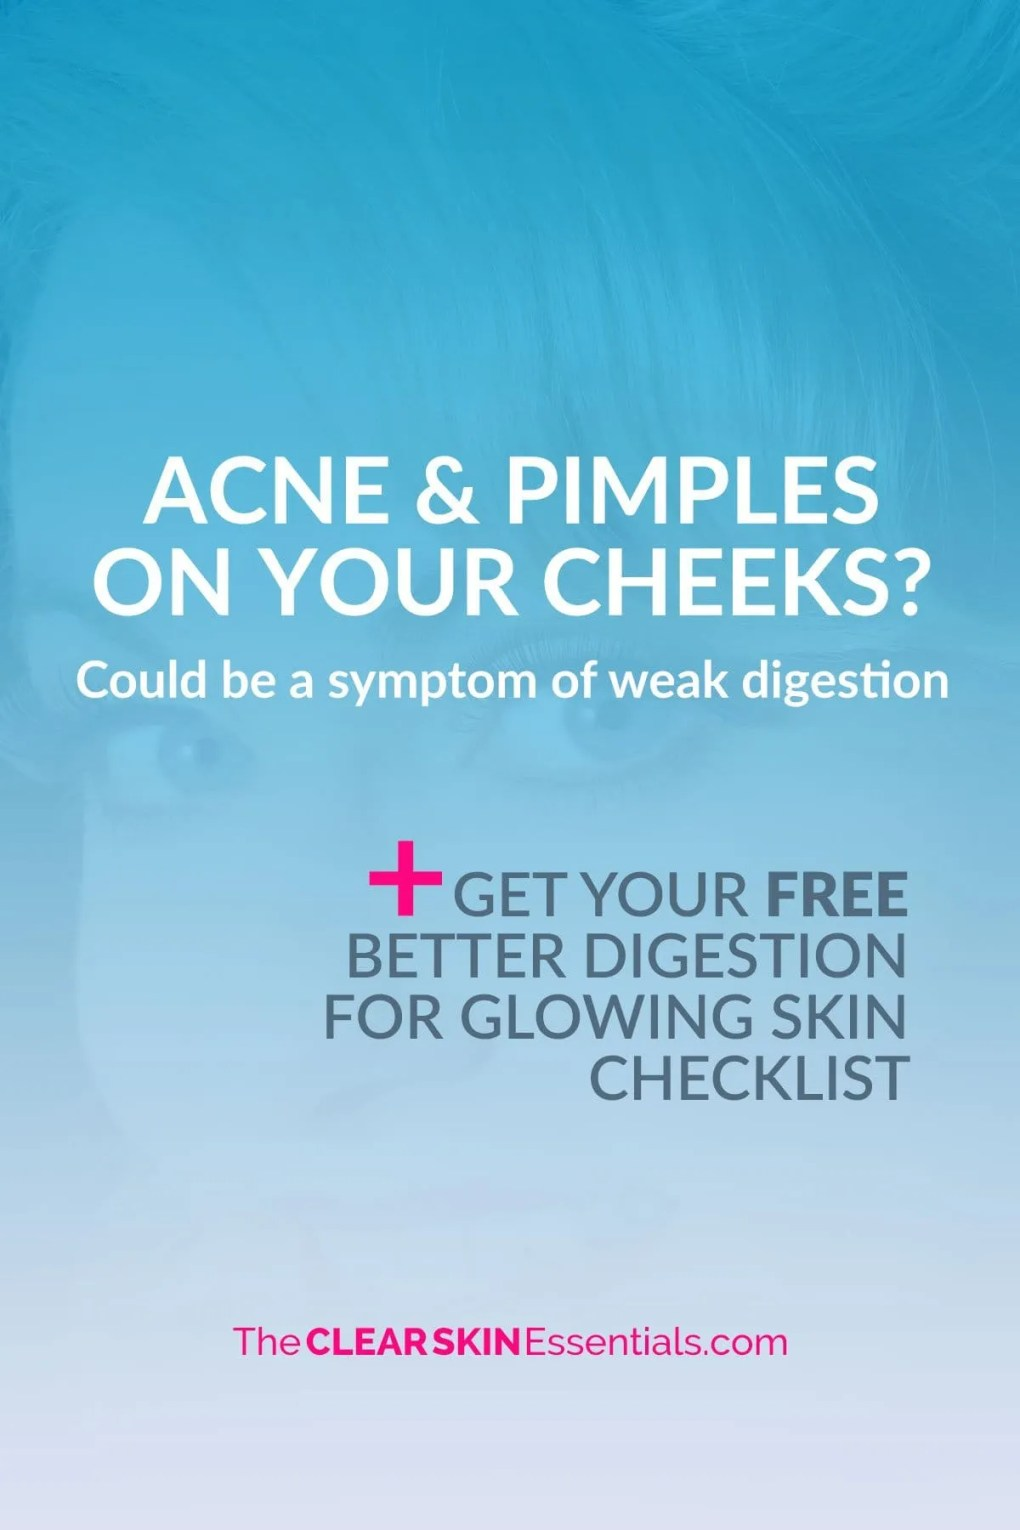 Do you have pimples or acne on your cheeks. Those painful pimples that don't seem to go away? Could be from your digestion. Even a healthy diet can give you breakouts if your having problems digesting the food. Click through to read more, plus get the FREE Better Digestion For Glowing Skin Checklist | www.TheClearSkinEssentials.com